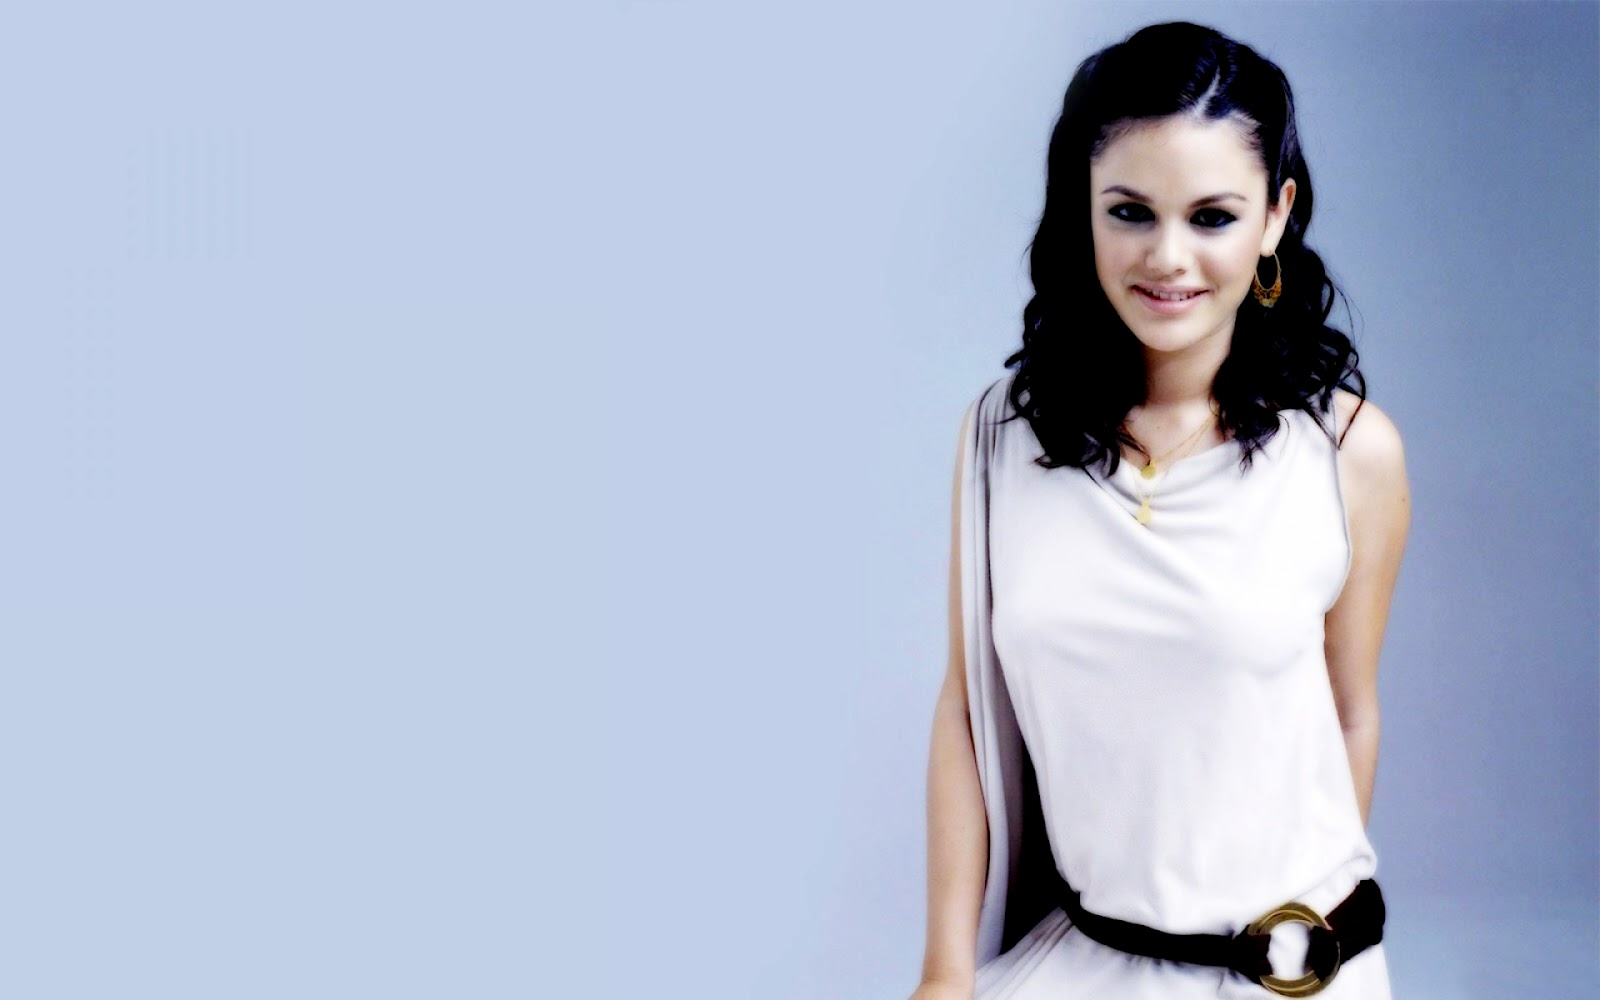 rachel bilson latest wallpapers 2013 - photo #1